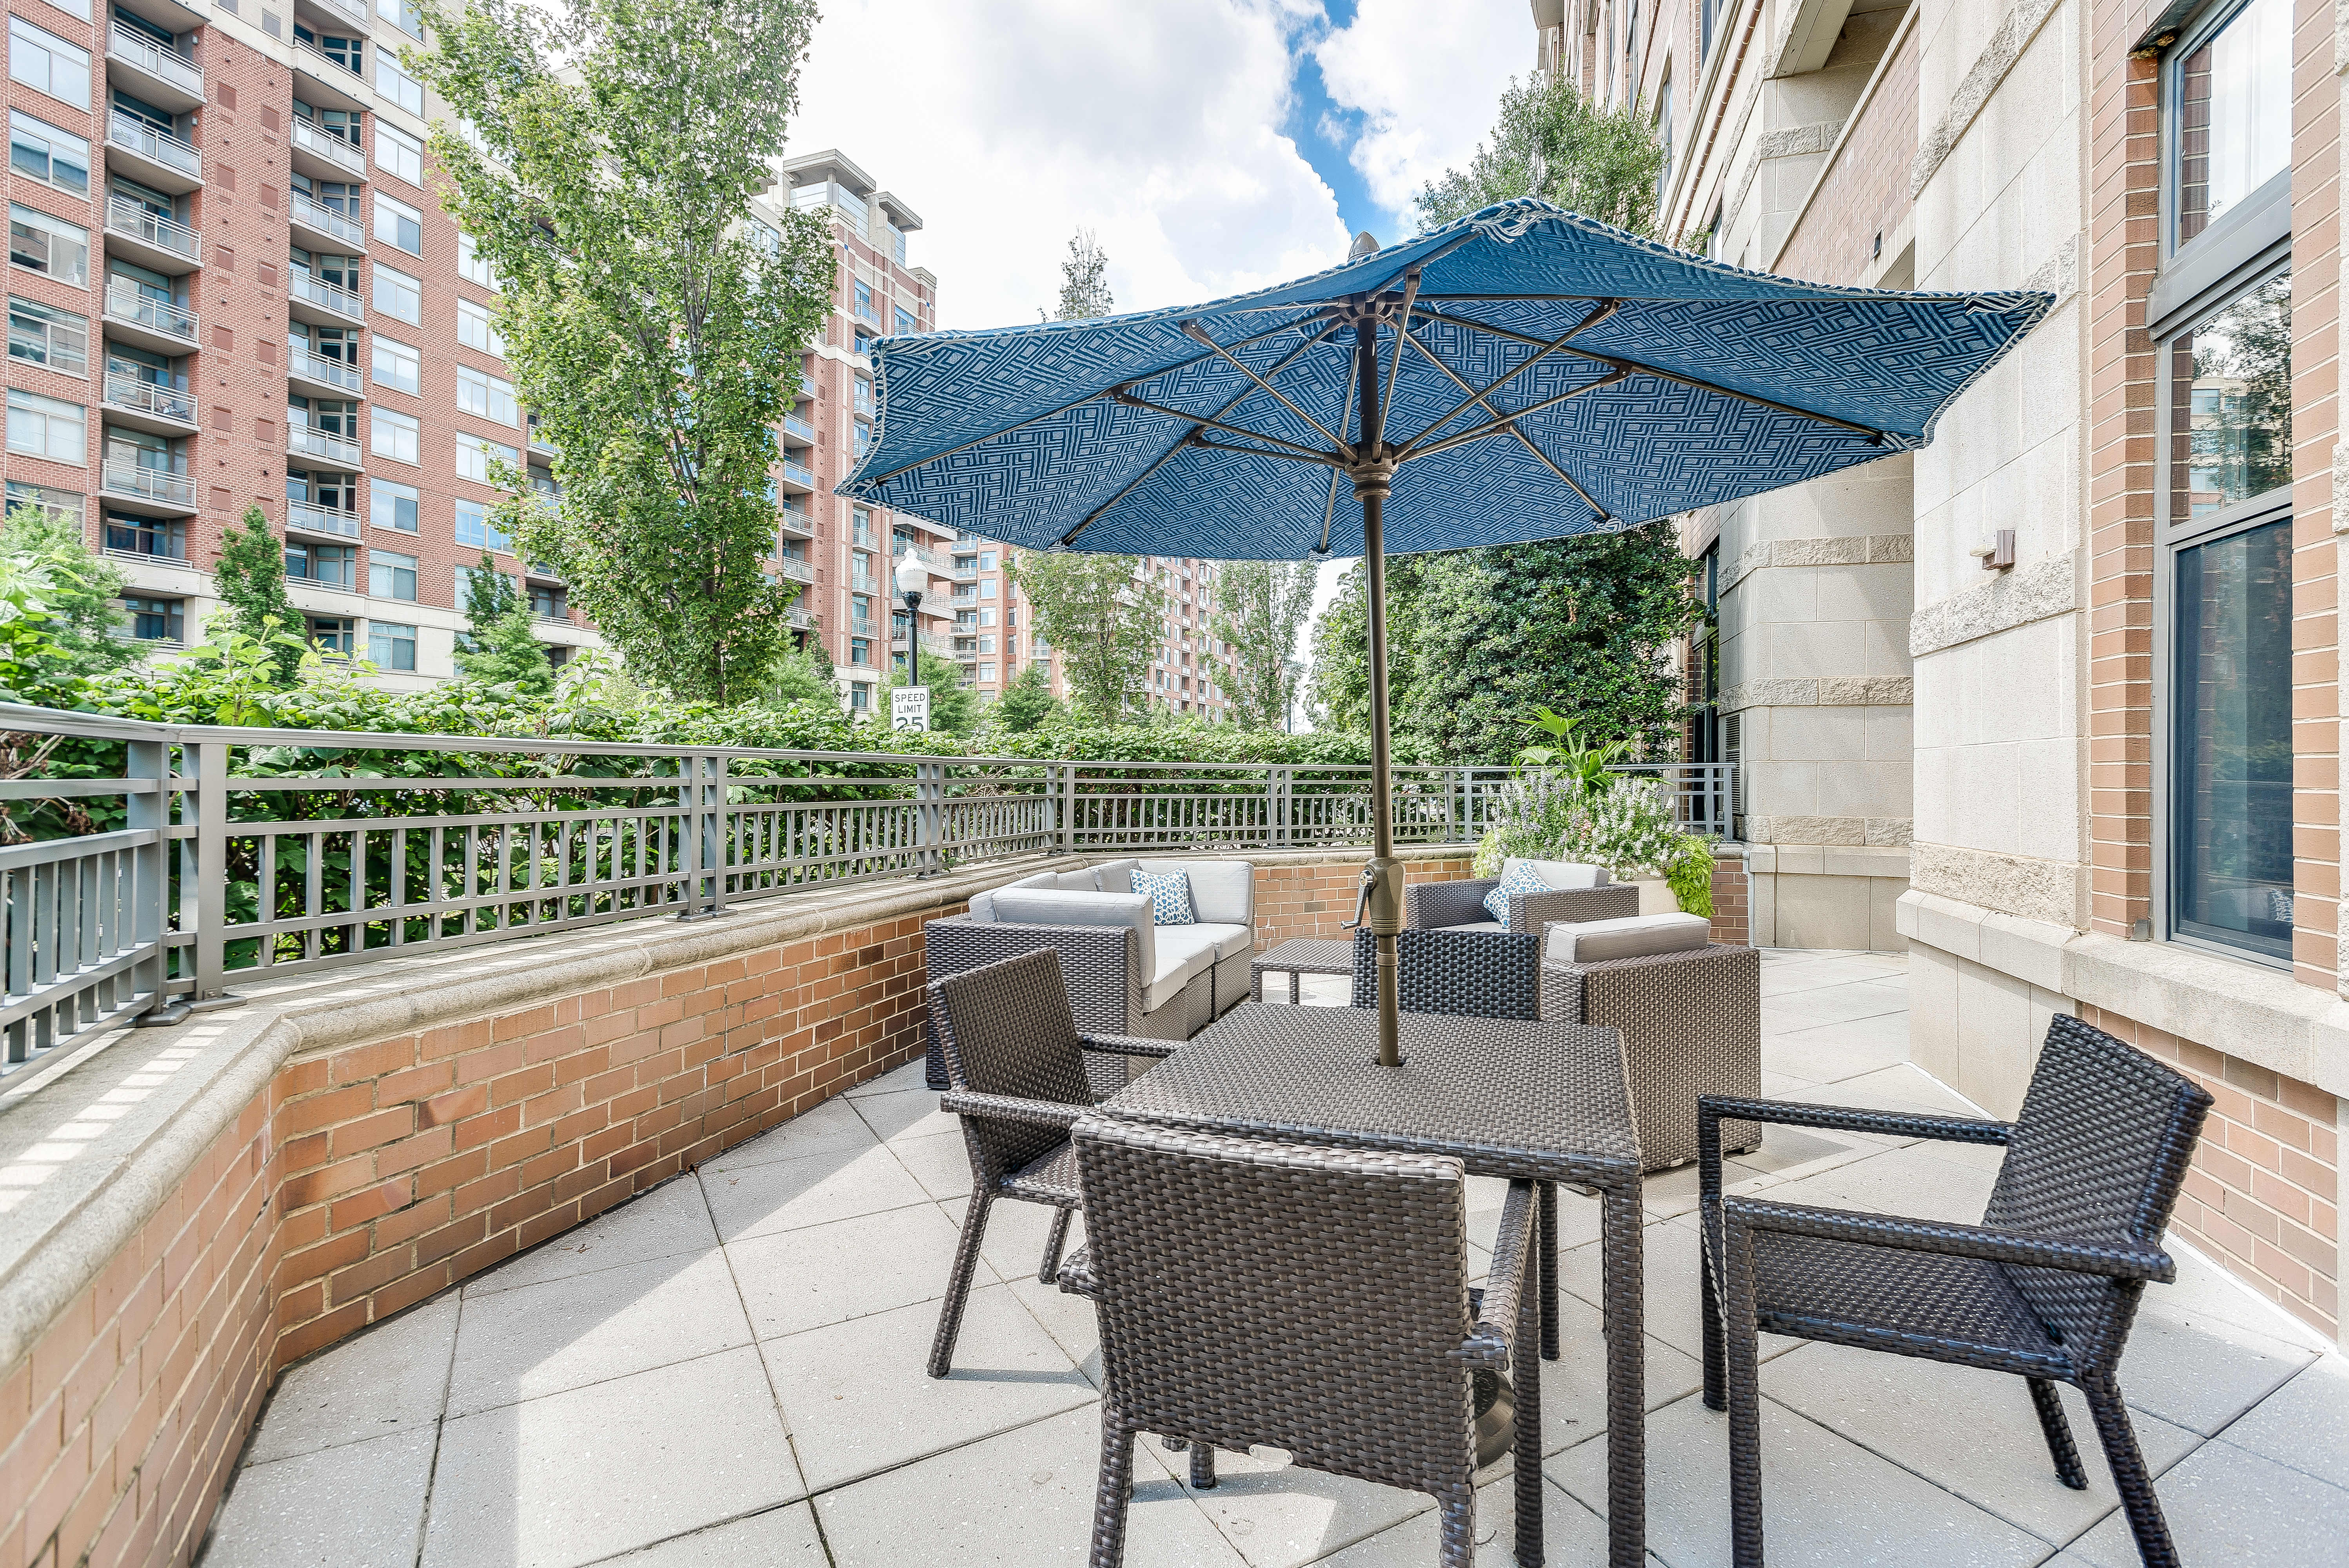 camden-potomac-yard-apartments-arlington-va-resident-lounge-outdoor-seating.jpg